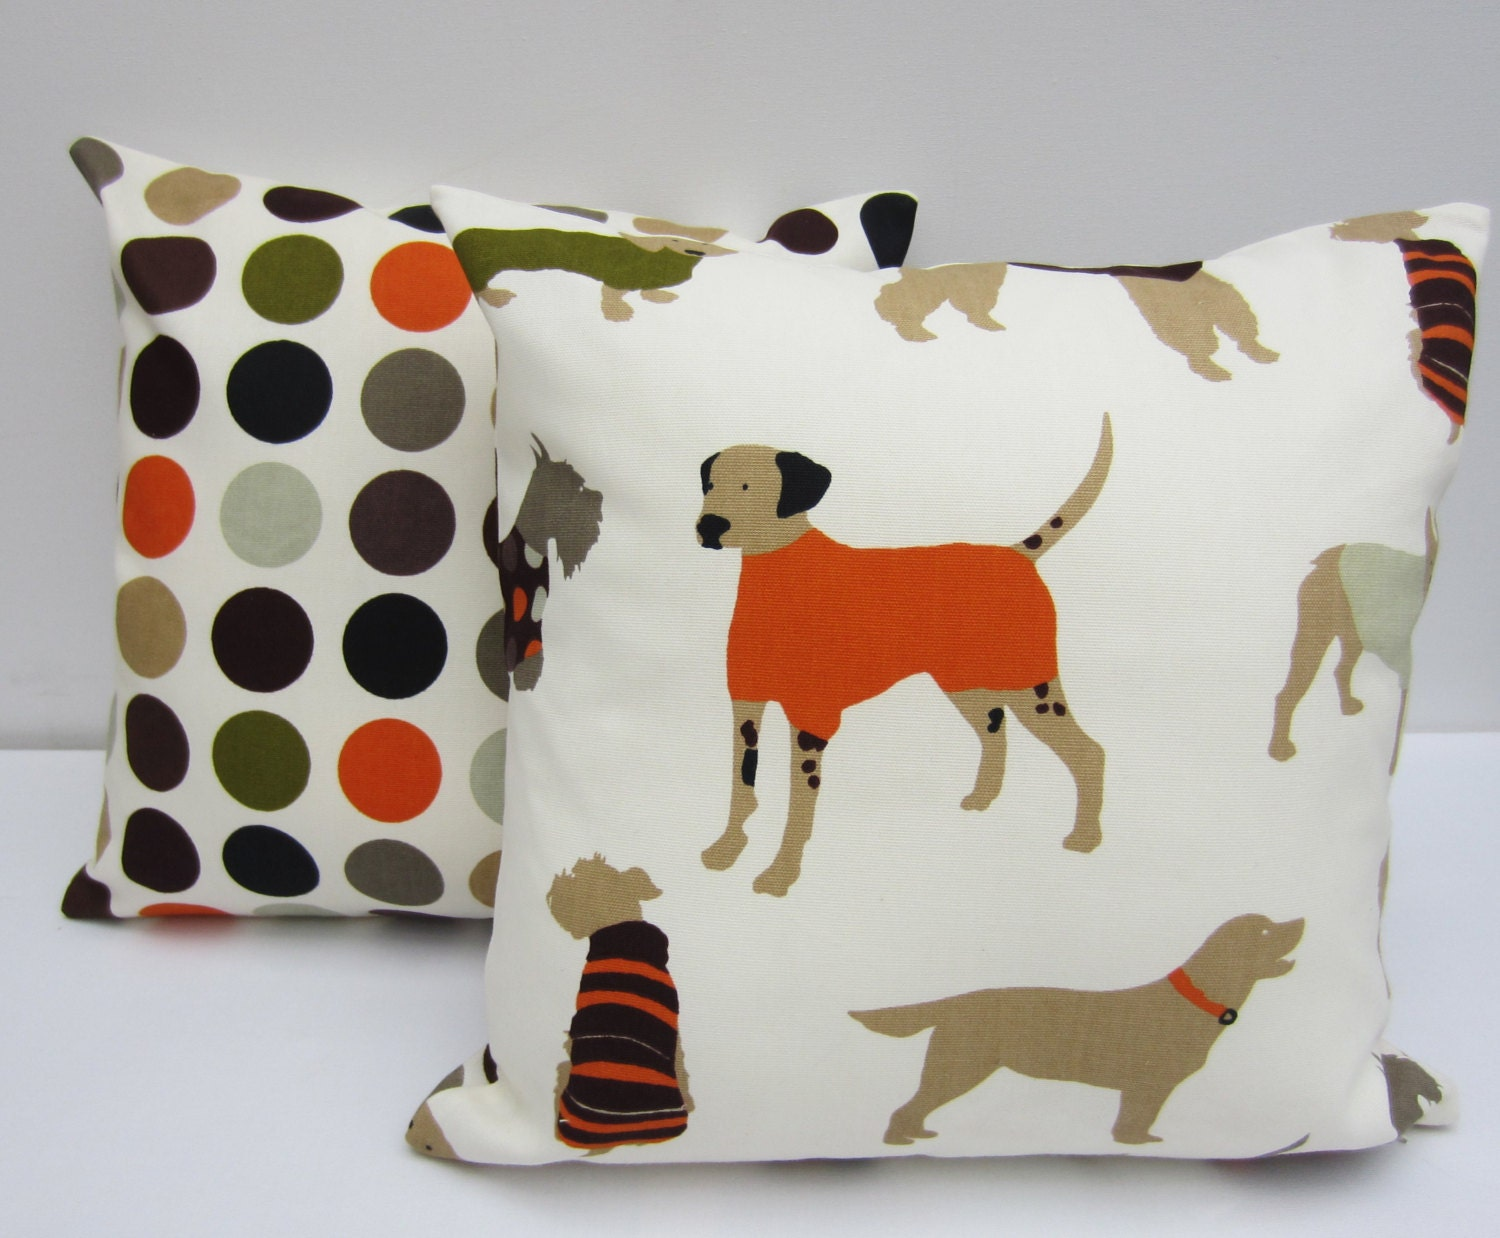 Decorative Pillow With Dog : Set of Dog Themed Decorative Pillow Covers 16 x 16 Inch